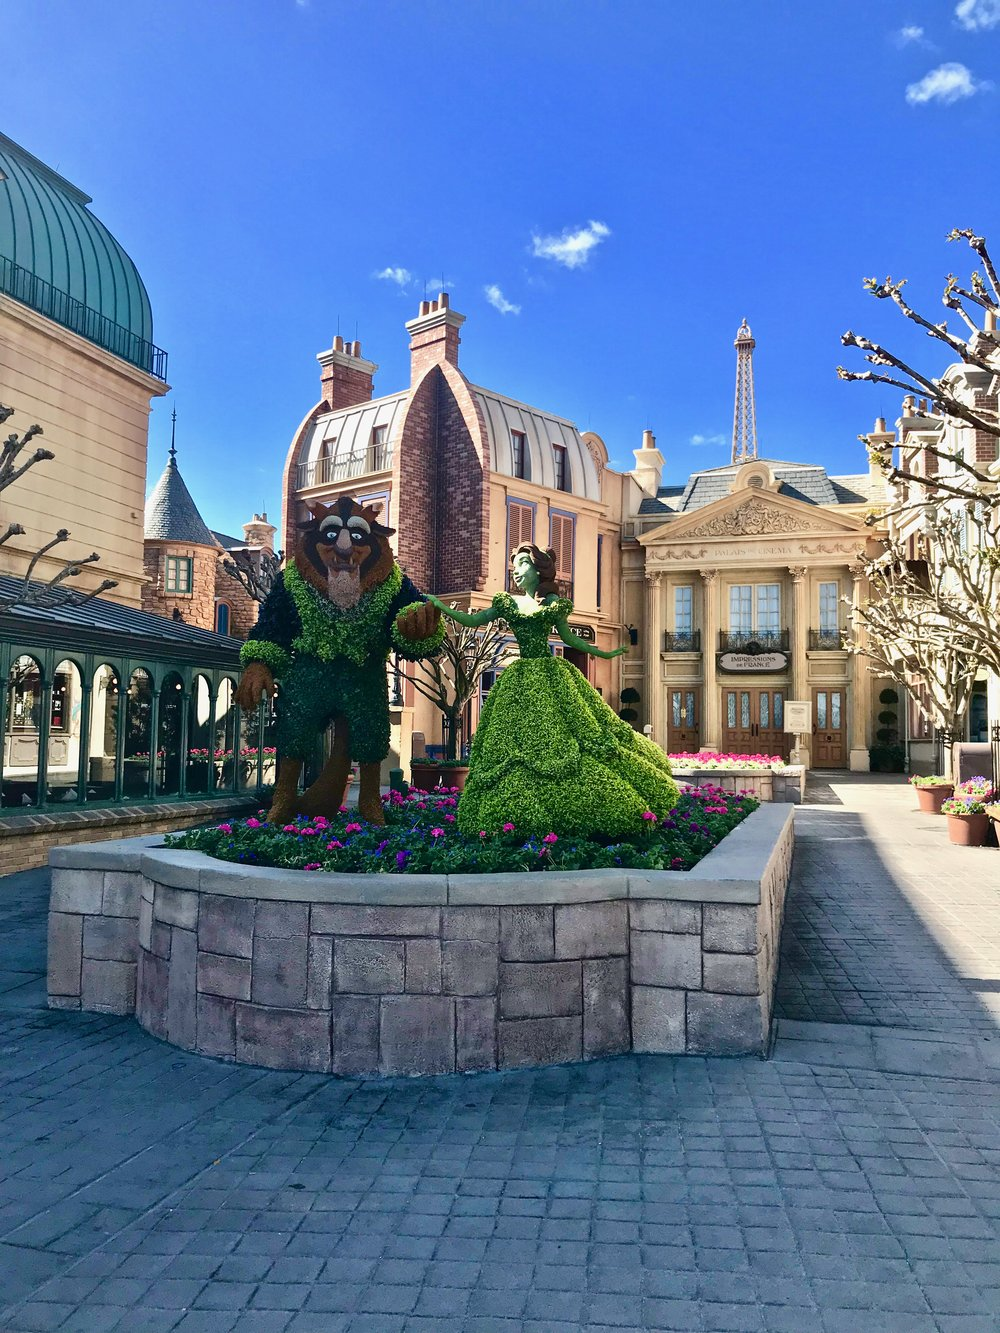 Walt Disney World France Pavilion Beauty and the Beast Flowers - How to Make the Most of Disney Theme Parks as an Adult